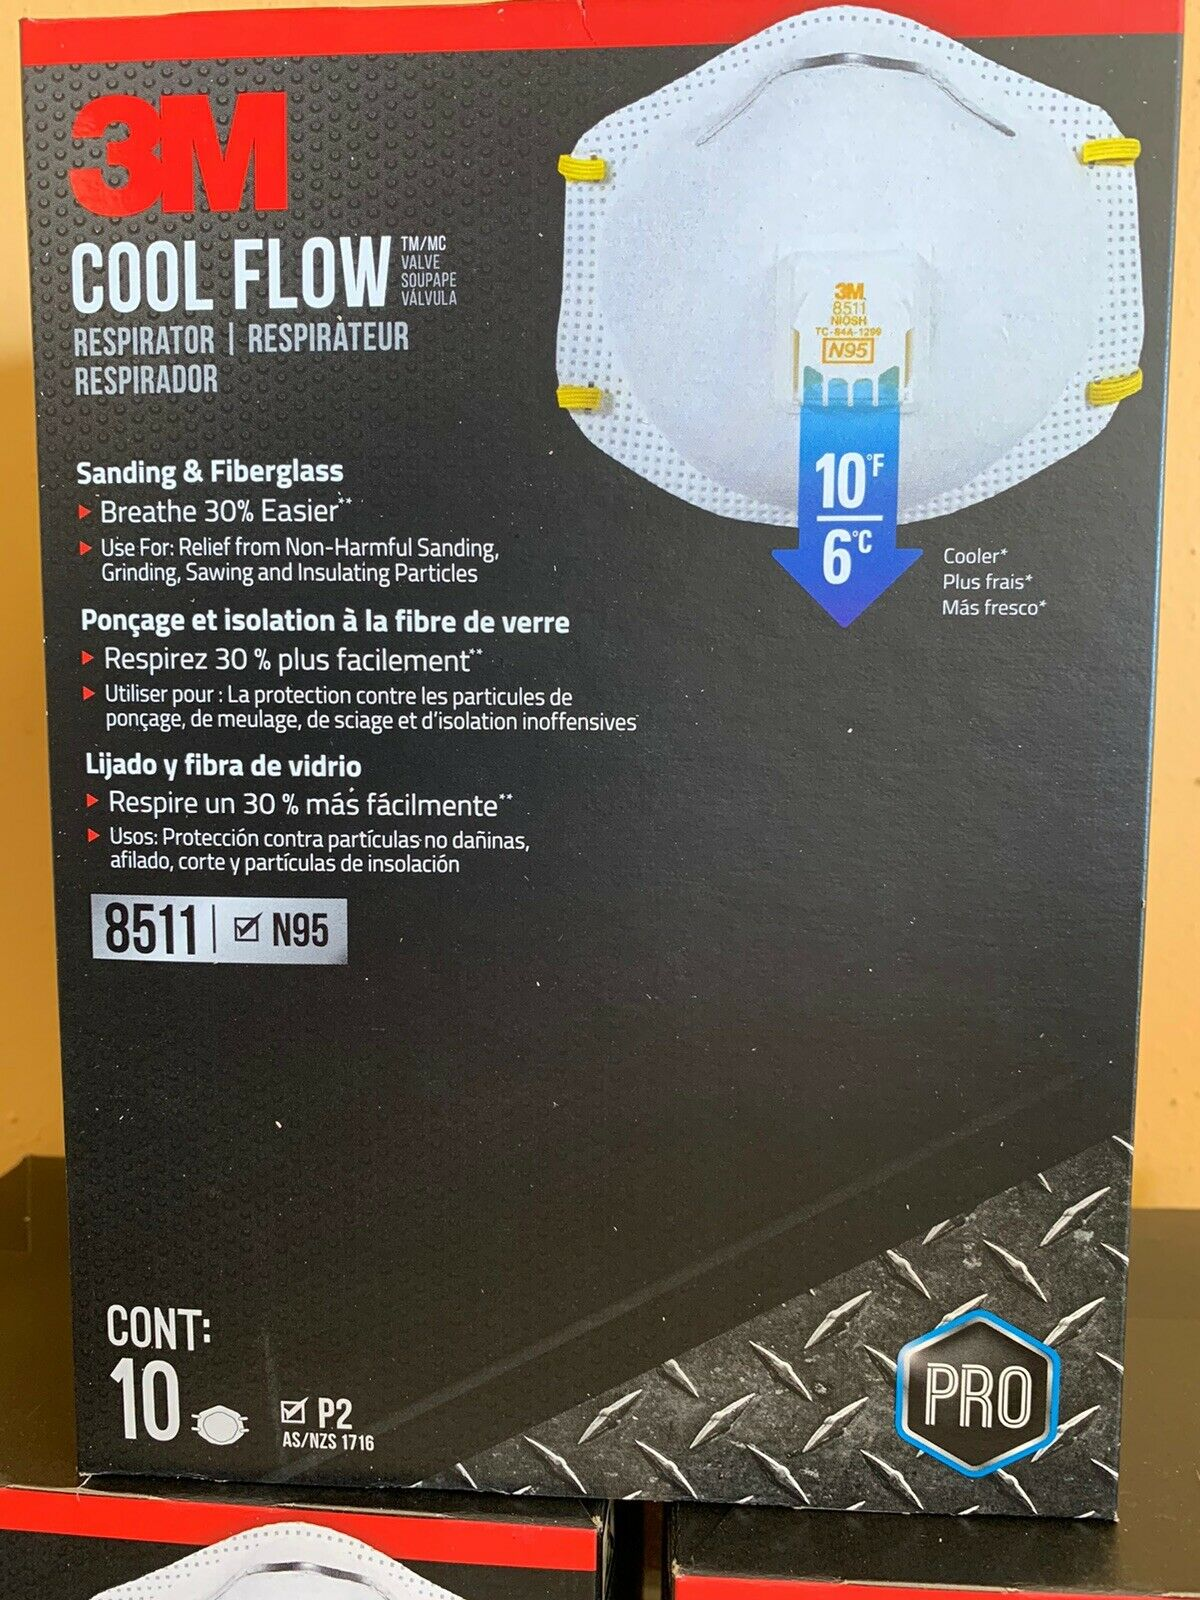 For Sale 3M 10-Pack Cool Flow Respirator/Same day Fast shipping